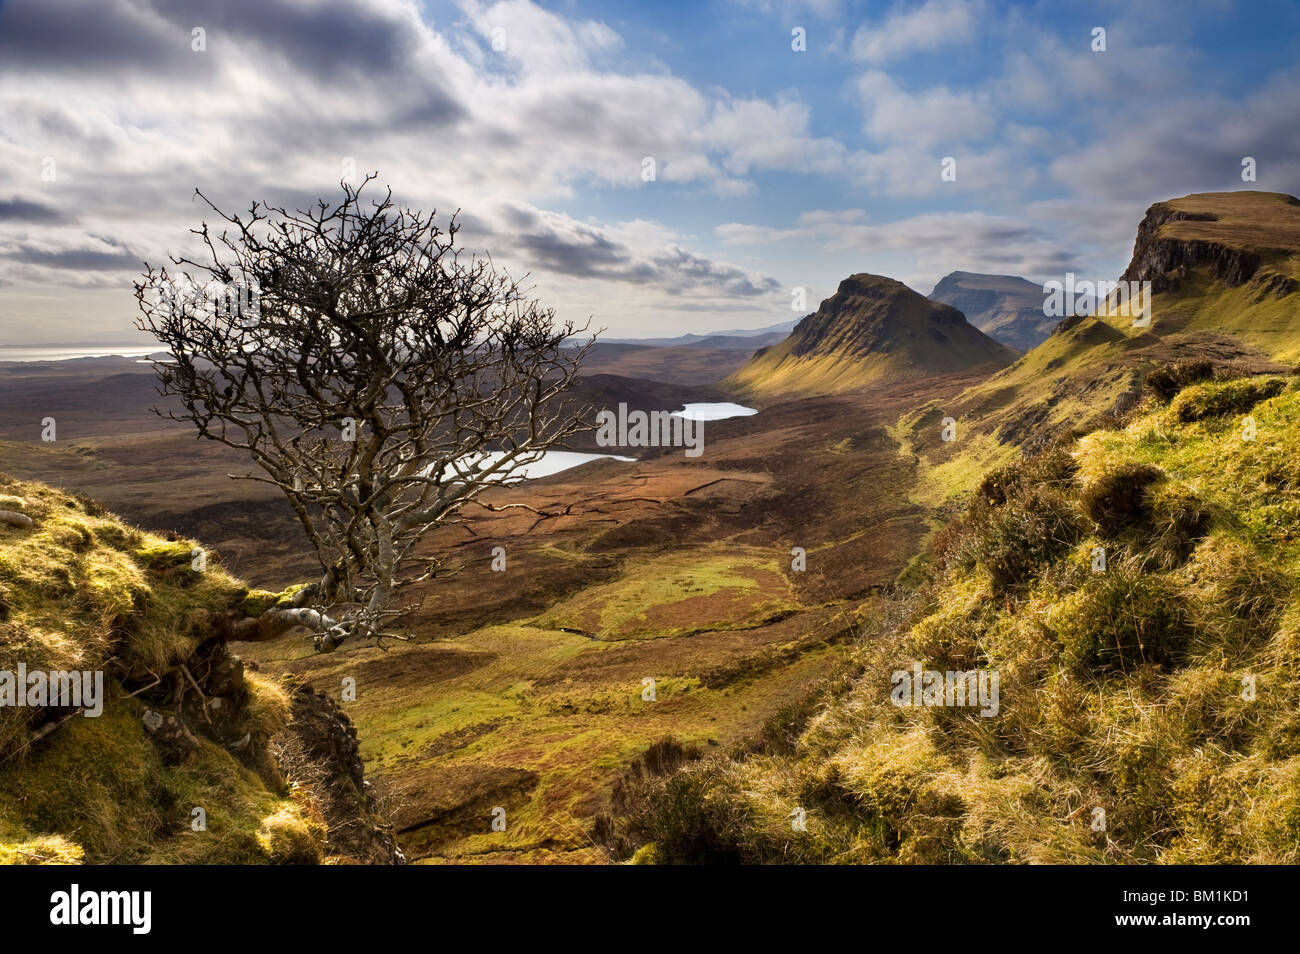 Trotternish Quiraing, de l'île de Skye, Hébrides intérieures, Highlands, Scotland, UK Photo Stock